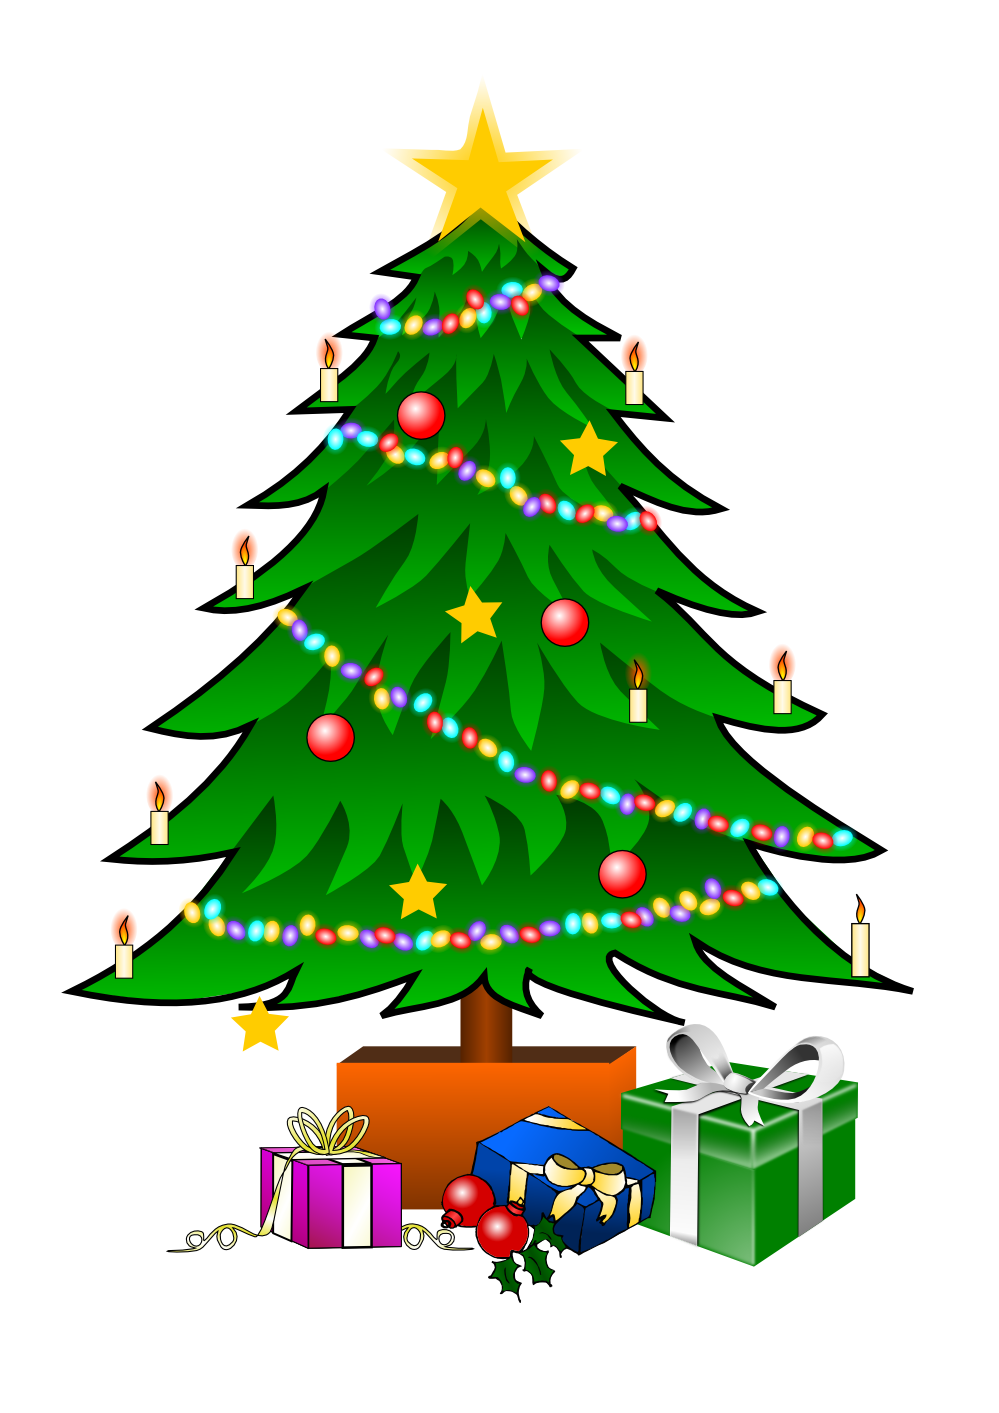 this nice christmas tree with presents clip art can be used for rh pinterest com clipart of christmas tree clip art images of christmas trees